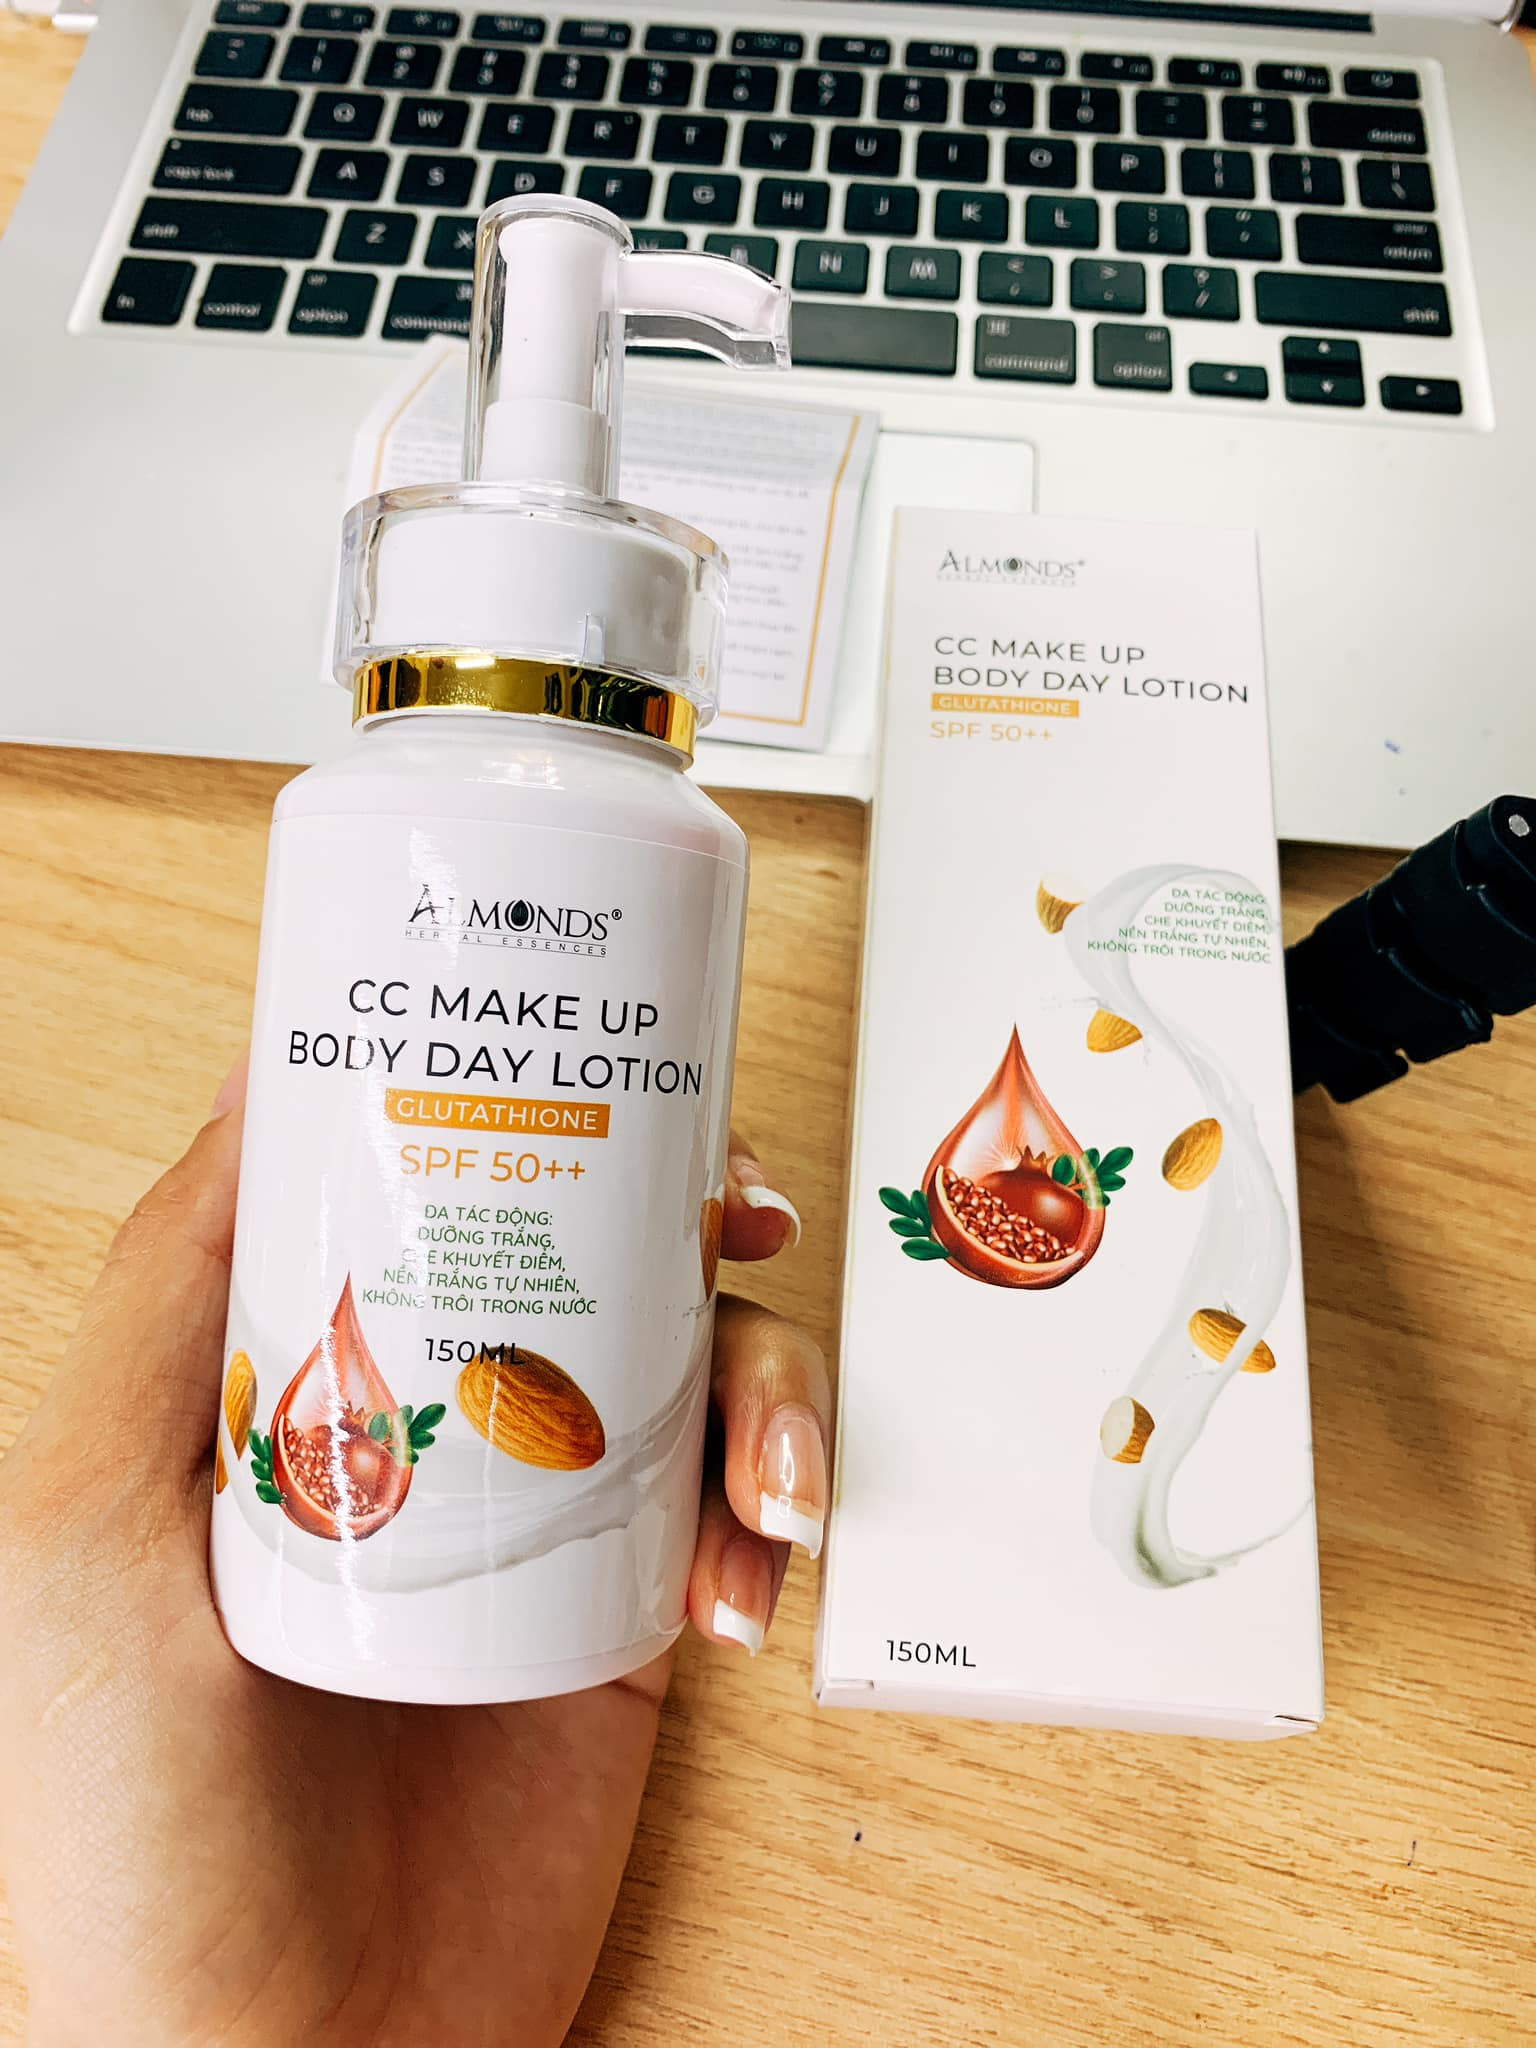 CC Make Up Body Day Lotion Almonds